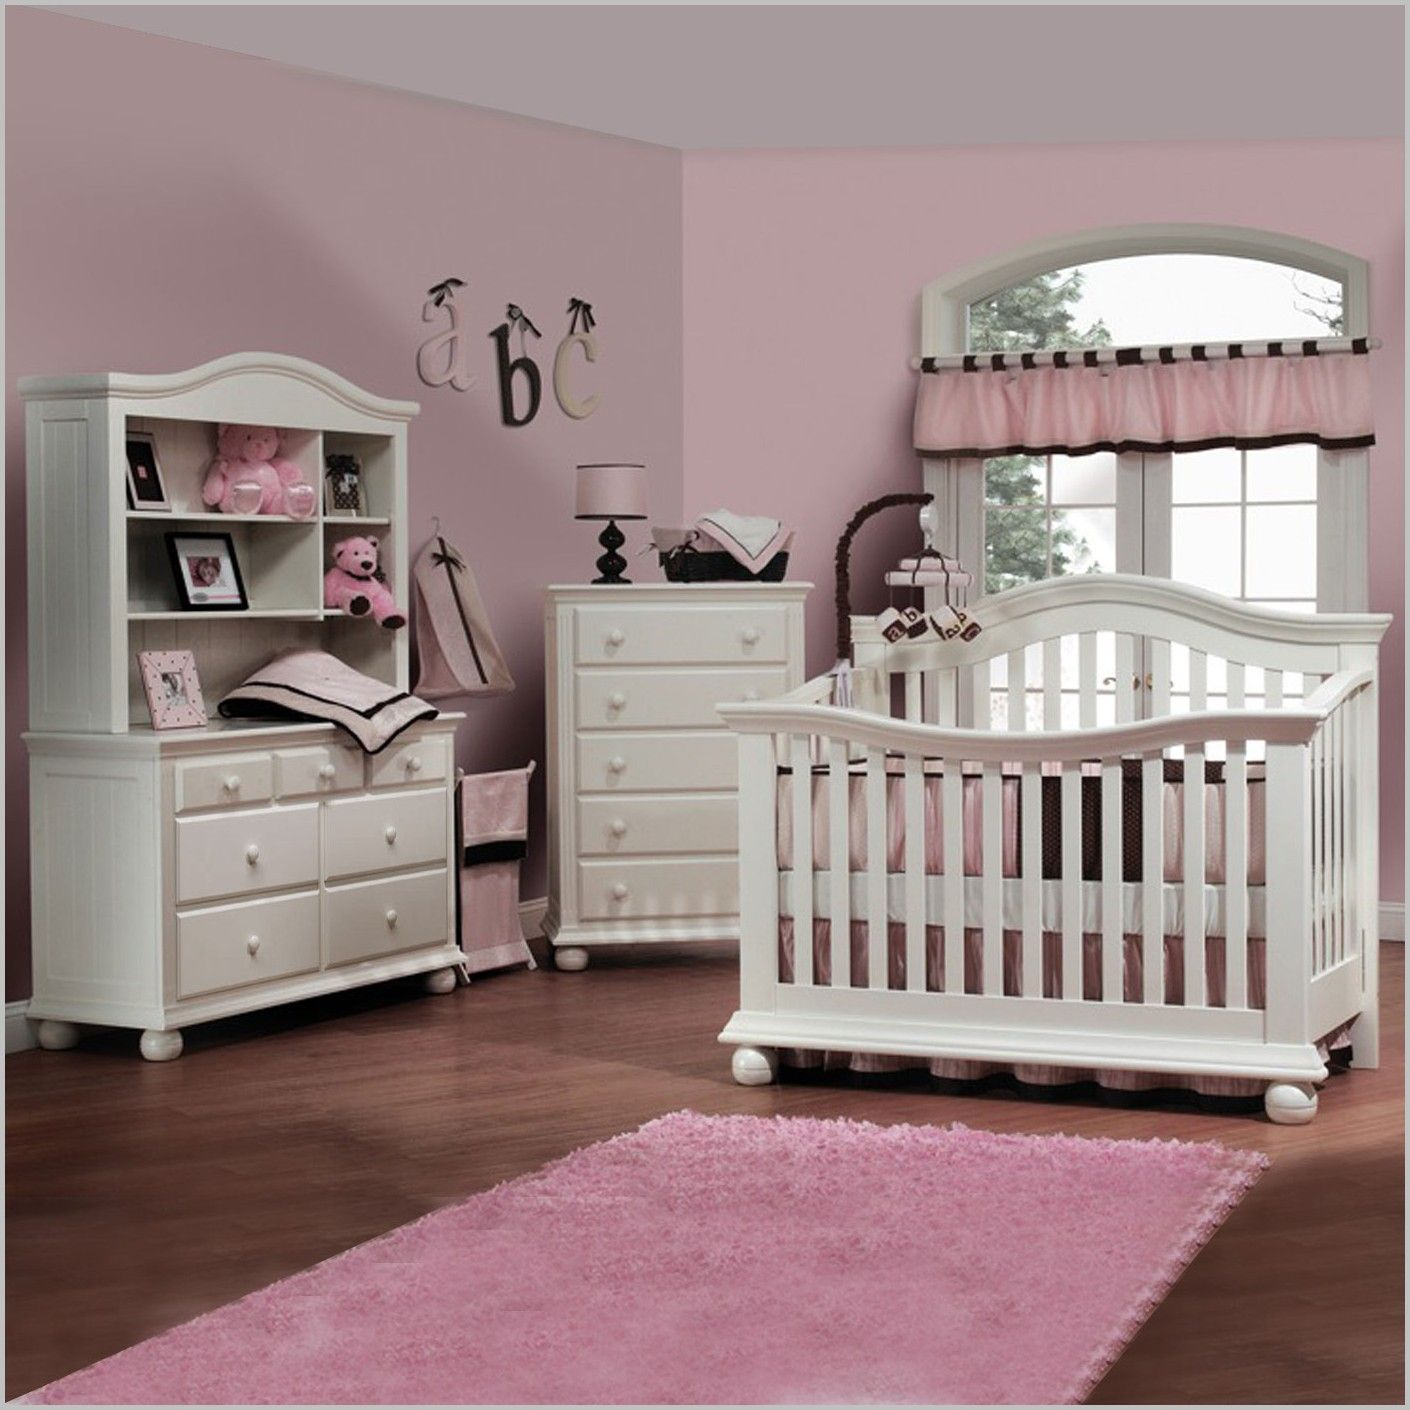 122 Reference Of Baby Crib Target Bassinet In 2020 Baby Cribs Best Baby Cribs Cribs